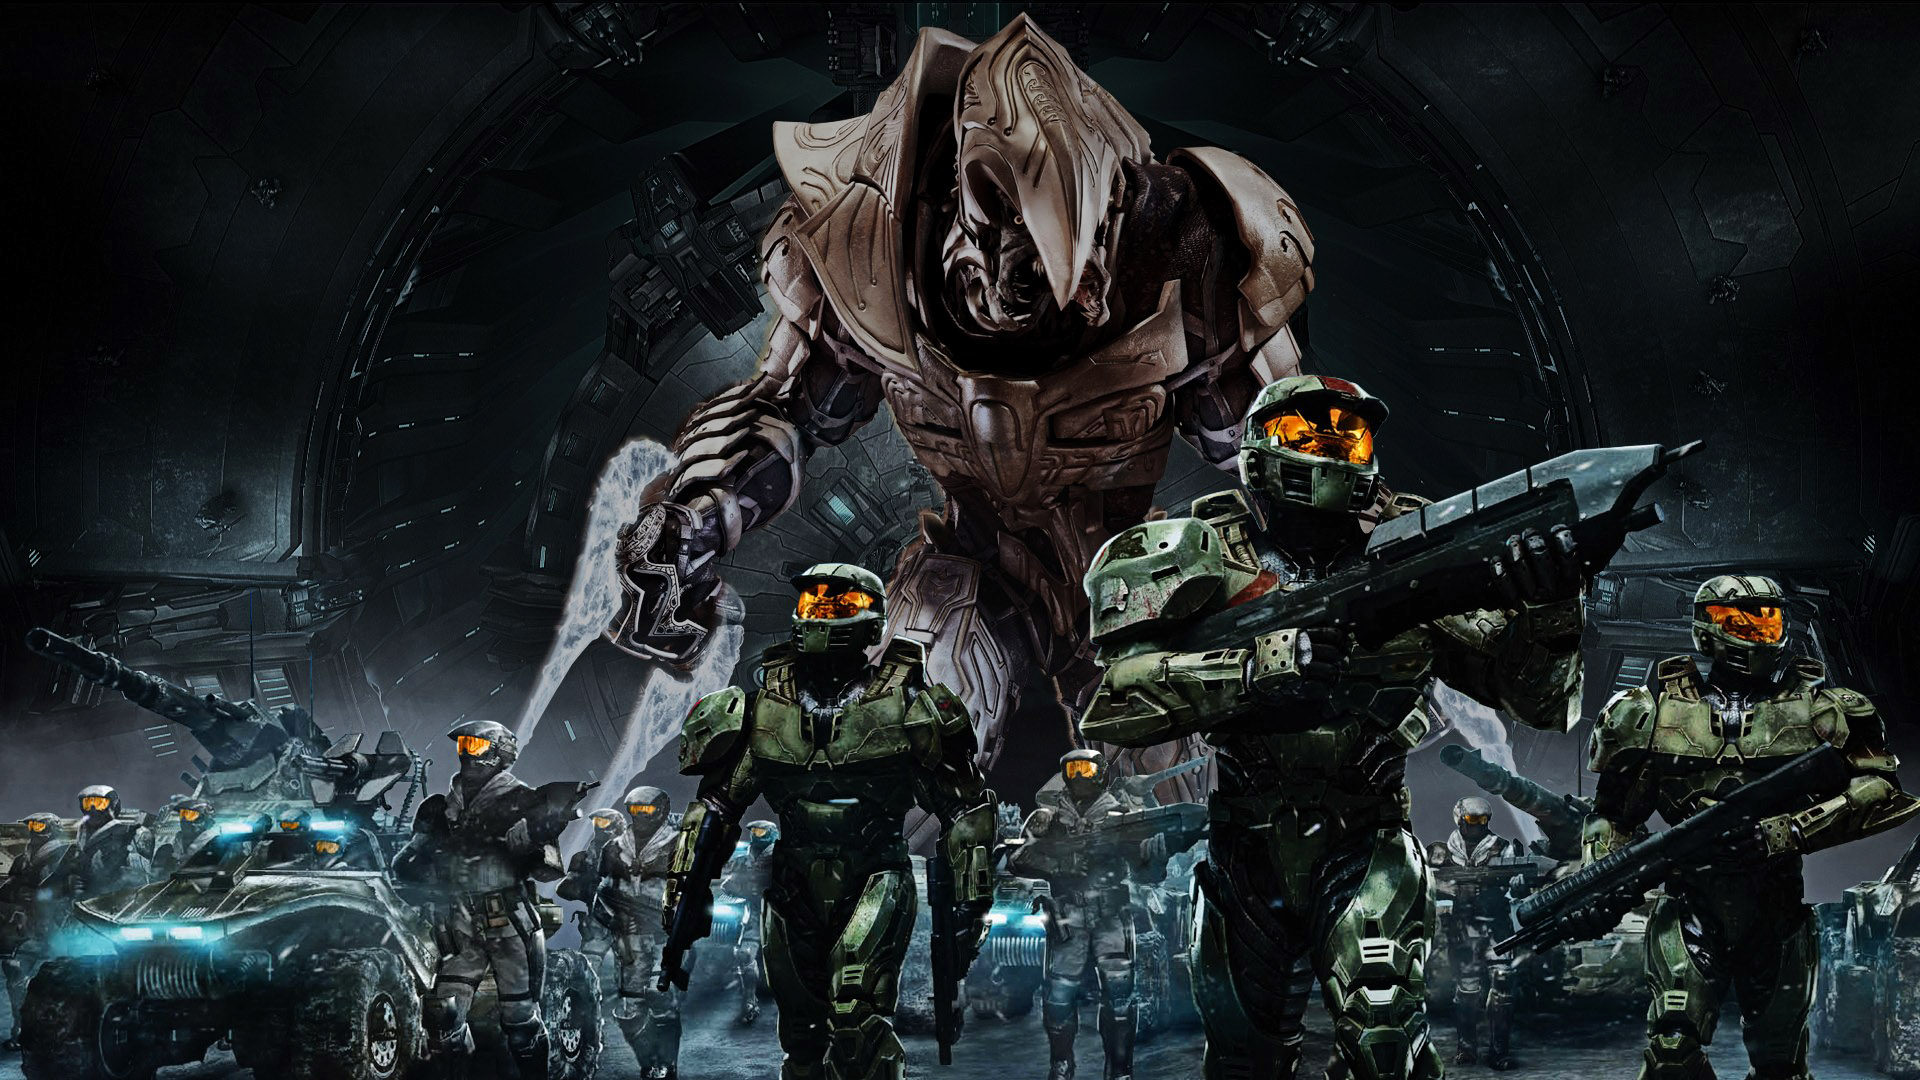 Wallpaperjpg   Halo Nation The Halo encyclopedia   Halo 1 Halo 1920x1080